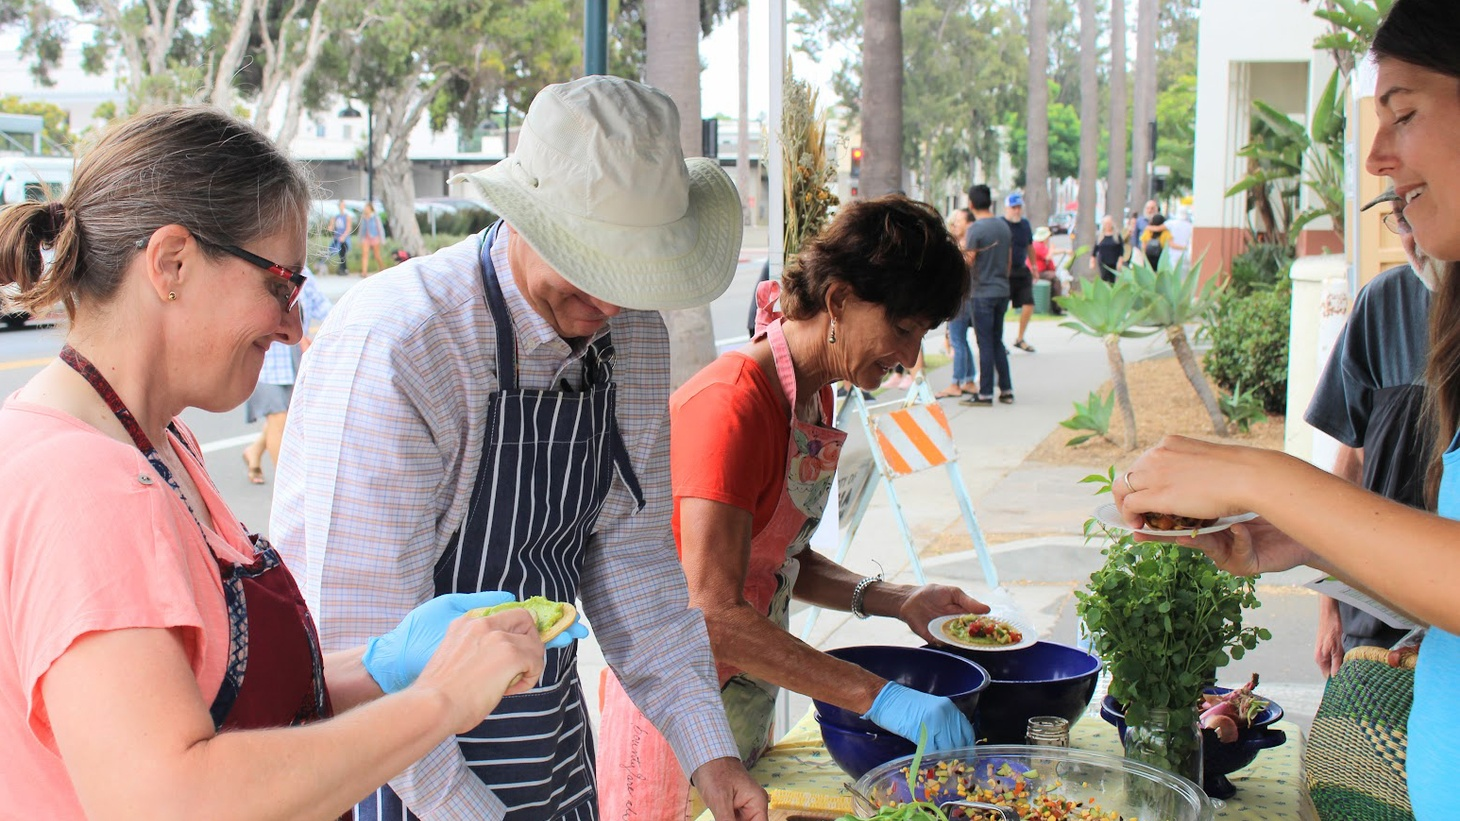 If you visit the Santa Barbara Farmers Market on certain Saturdays, you may notice new cooking demos taking place. Sometimes it's a local chef teaching you how to cook a popular dish from the restaurant.